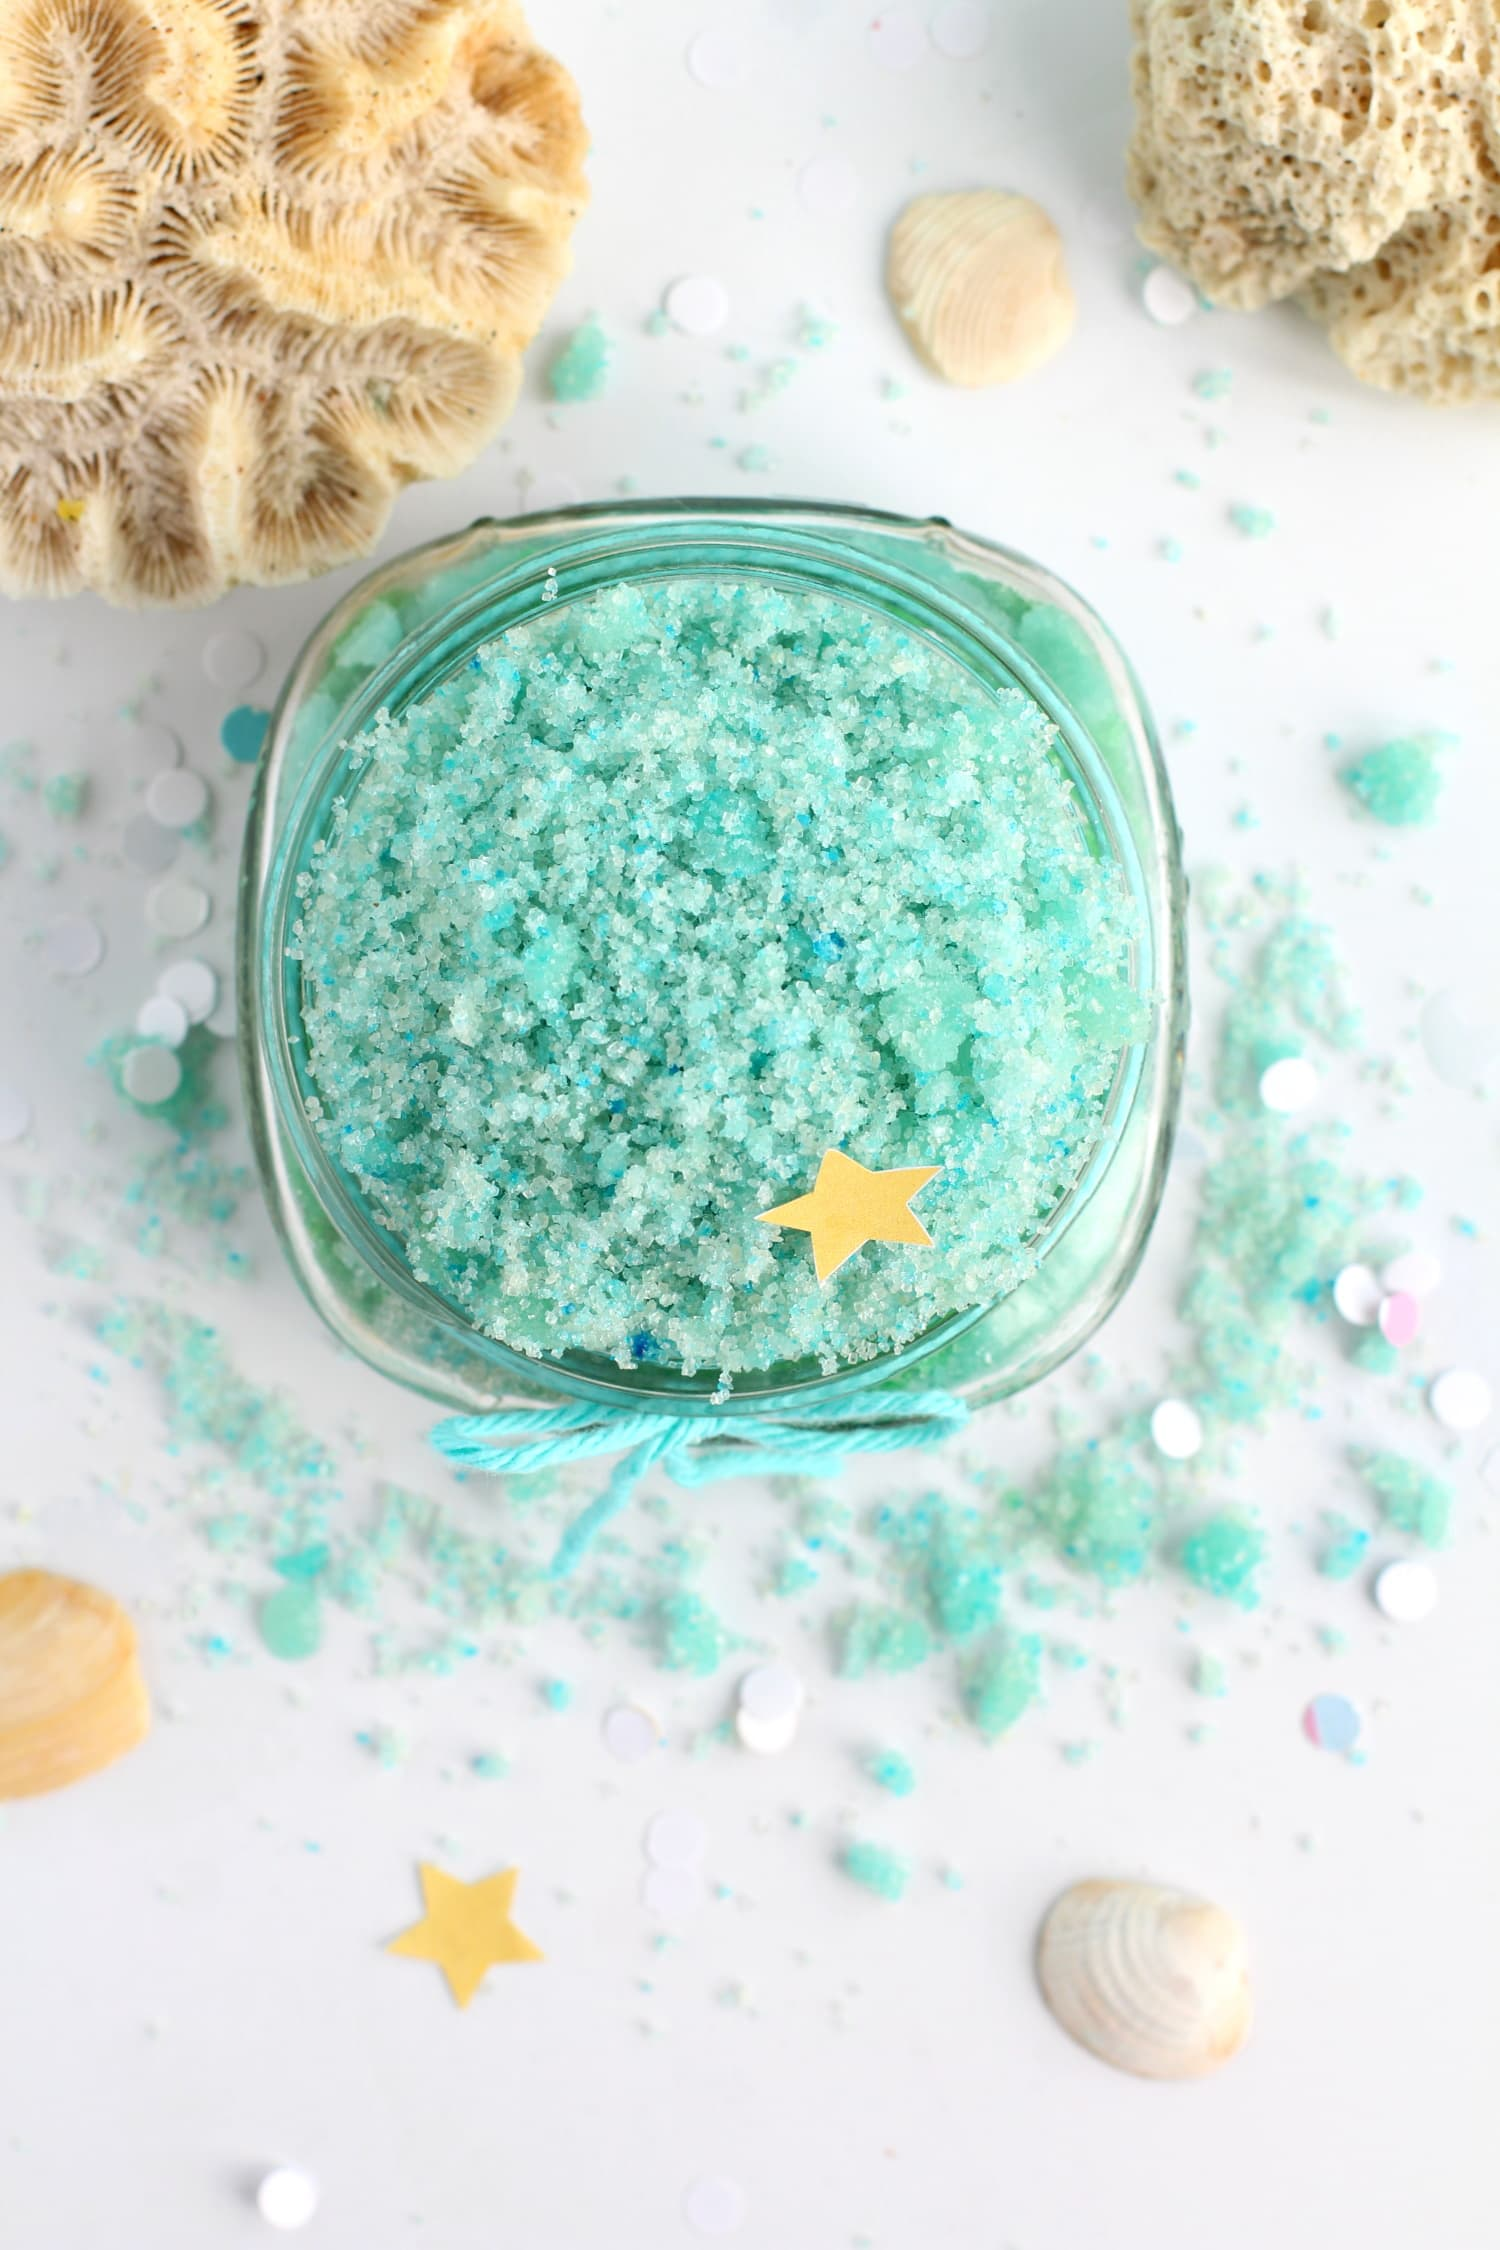 Mermaid sugar scrub DIY